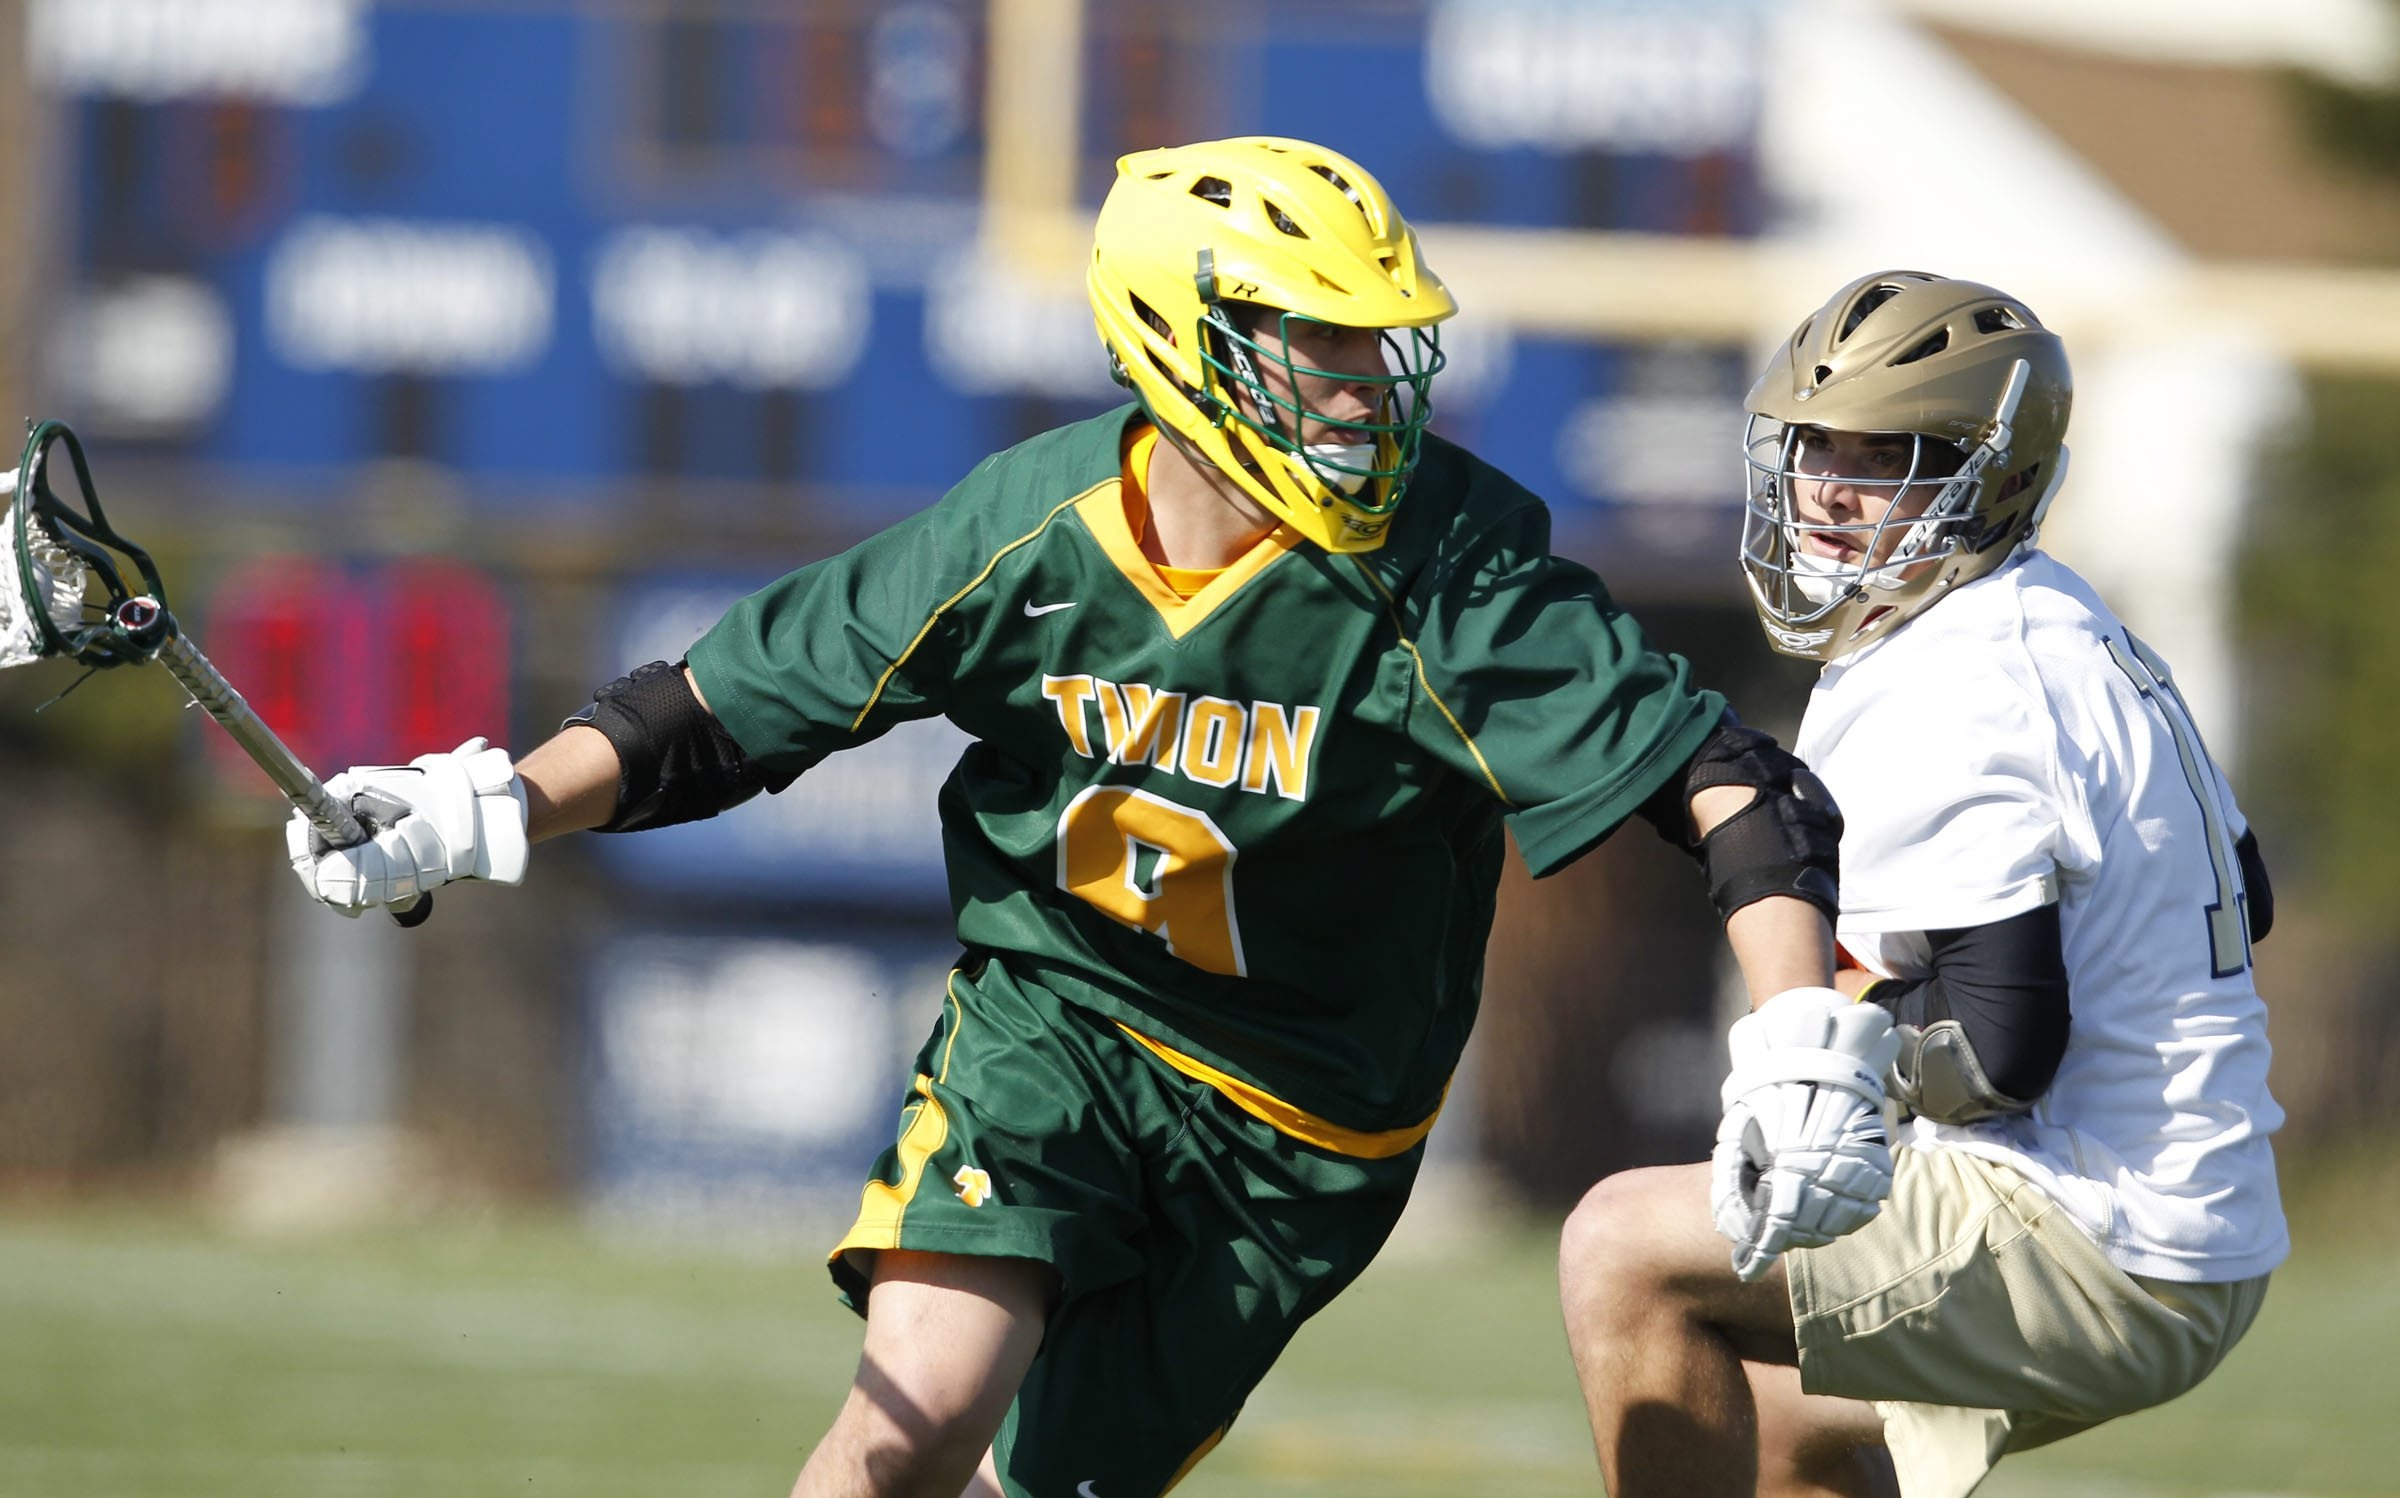 Bishop Timon player Adam Dimillo (9) drives around Canisius player Jakob Loucks (11) during action at the Robert J. Stransky Memorial Athletic Complex on, Thursday, April 24, 2014. {Photo by}